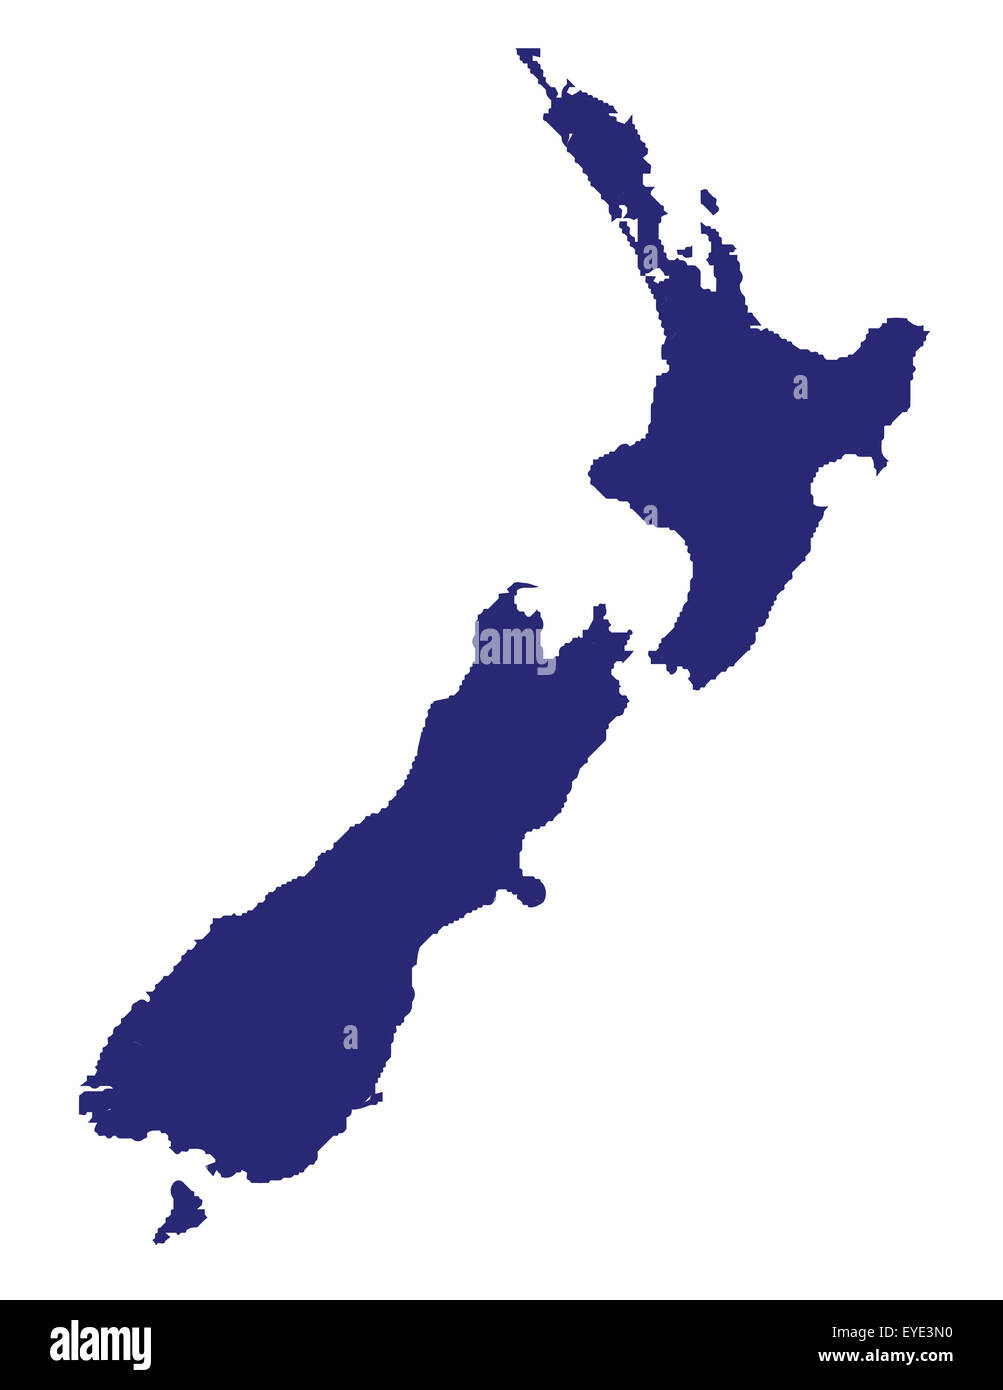 Outline map of New Zealand over a white background - Stock Image